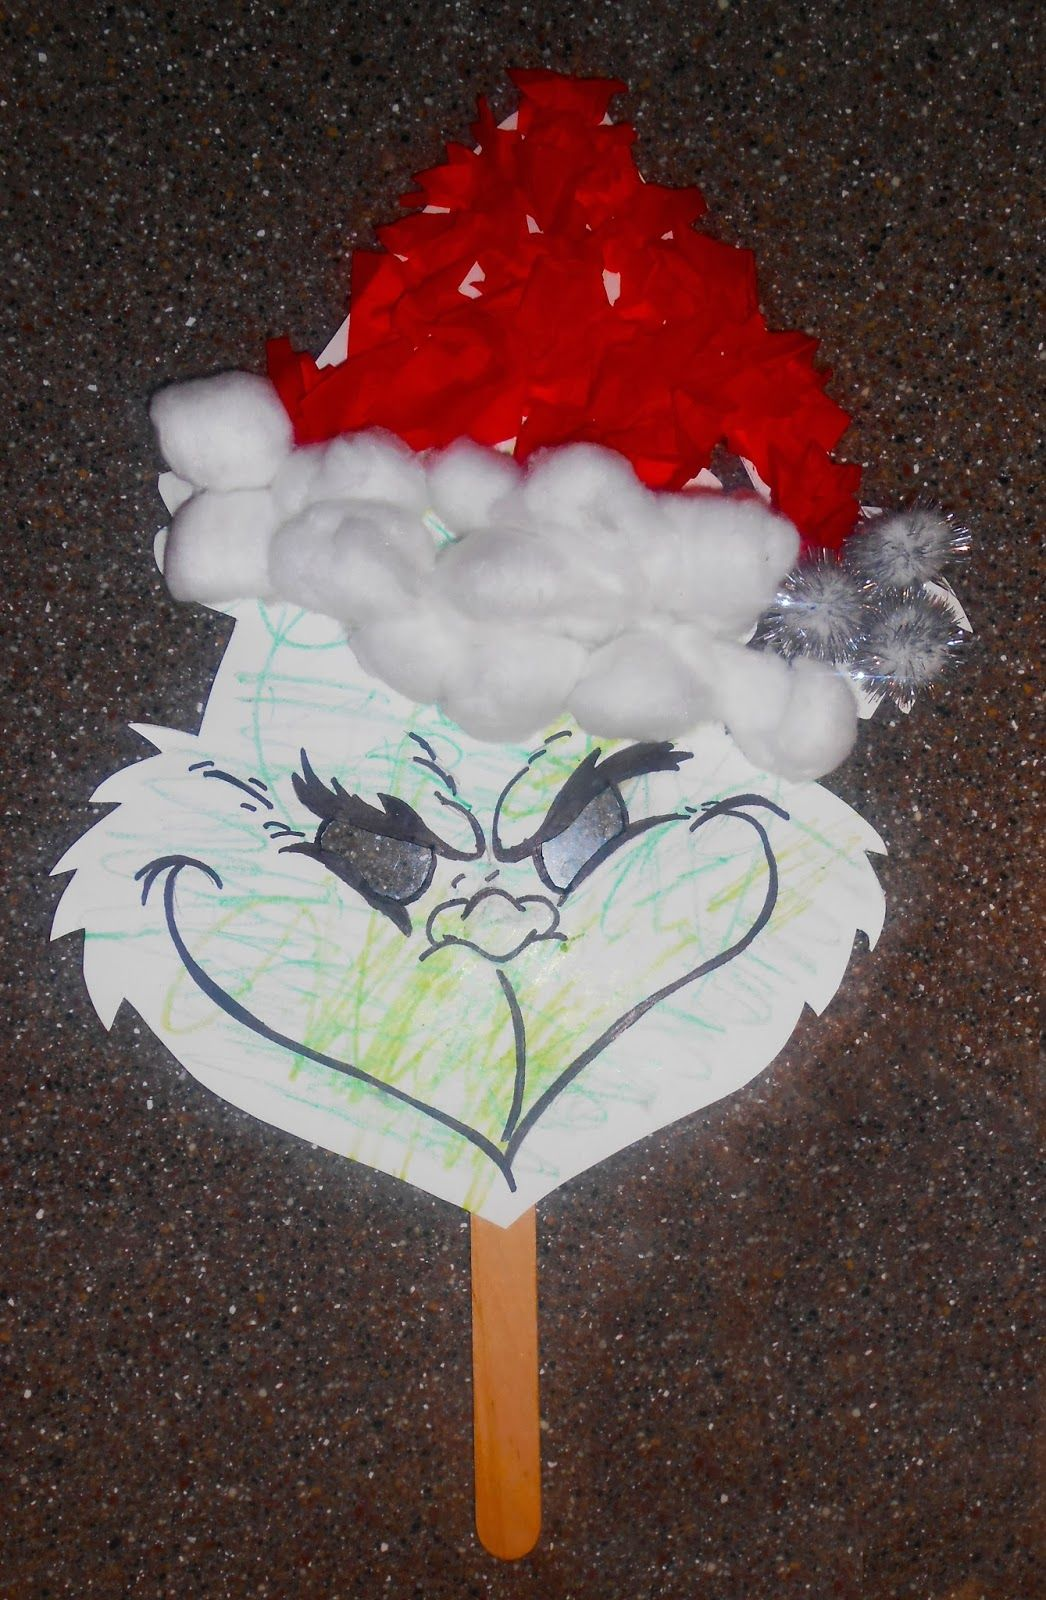 Diy Kids Grinch Mask The Keeper Of The Cheerios Grinch Crafts Preschool Christmas Grinch Christmas Party